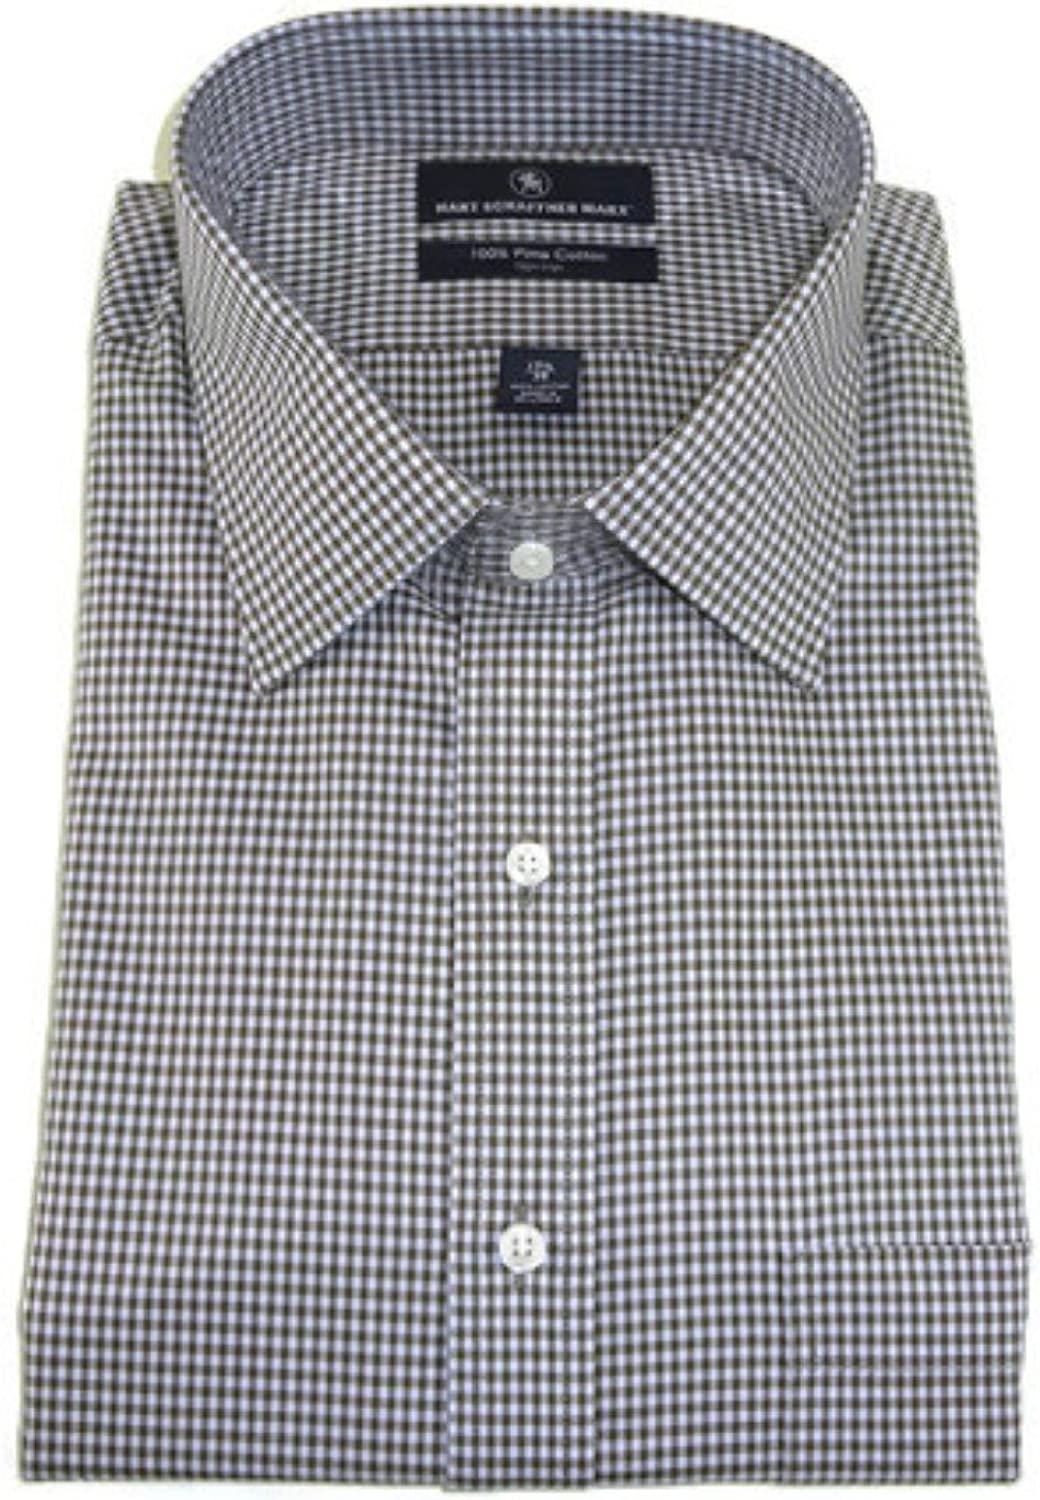 Hart Schaffner Marx Non-Iron Fitted Classic-Fit Spread-Collar Check Dress Shirt, Brown Multi